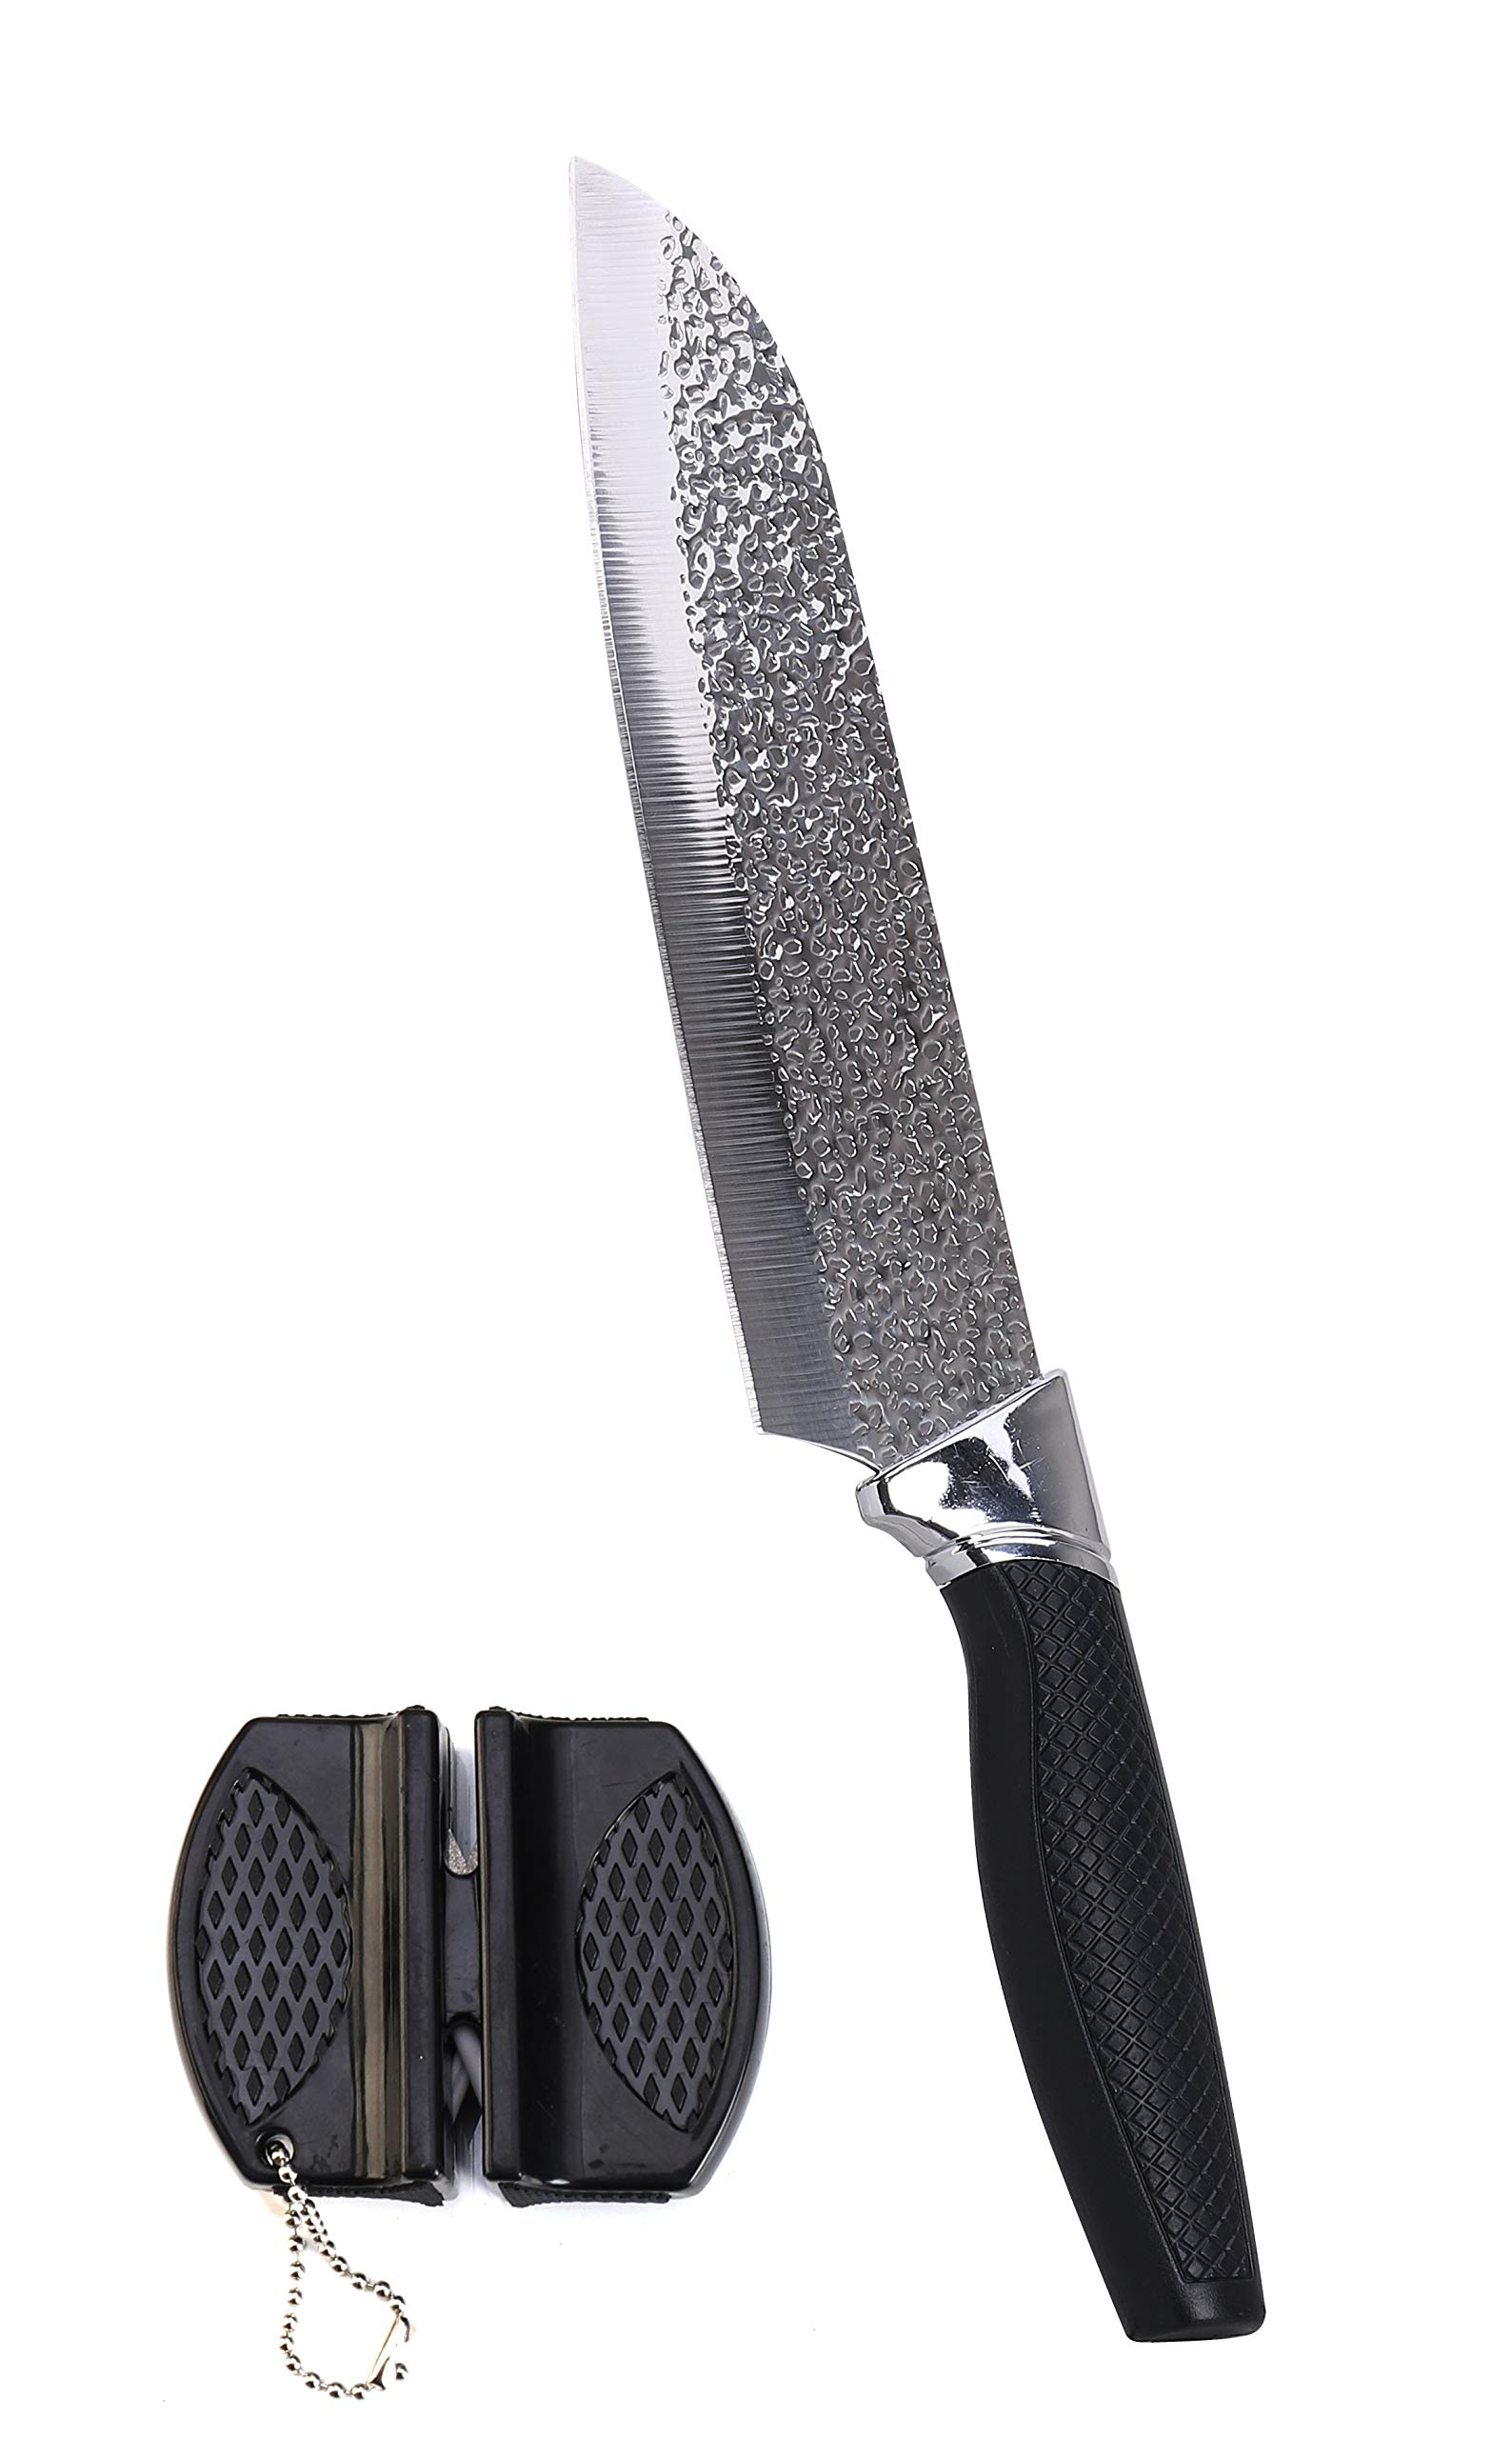 eZthings 12'' Heavy Duty Professional Cutting Chefs Knife - Razor Sharp with Edge Retention, Stain-Corrosion Resistant for Home Kitchen Plus Free Knife Sharpener (Chef Knife 7 Inch Blade)